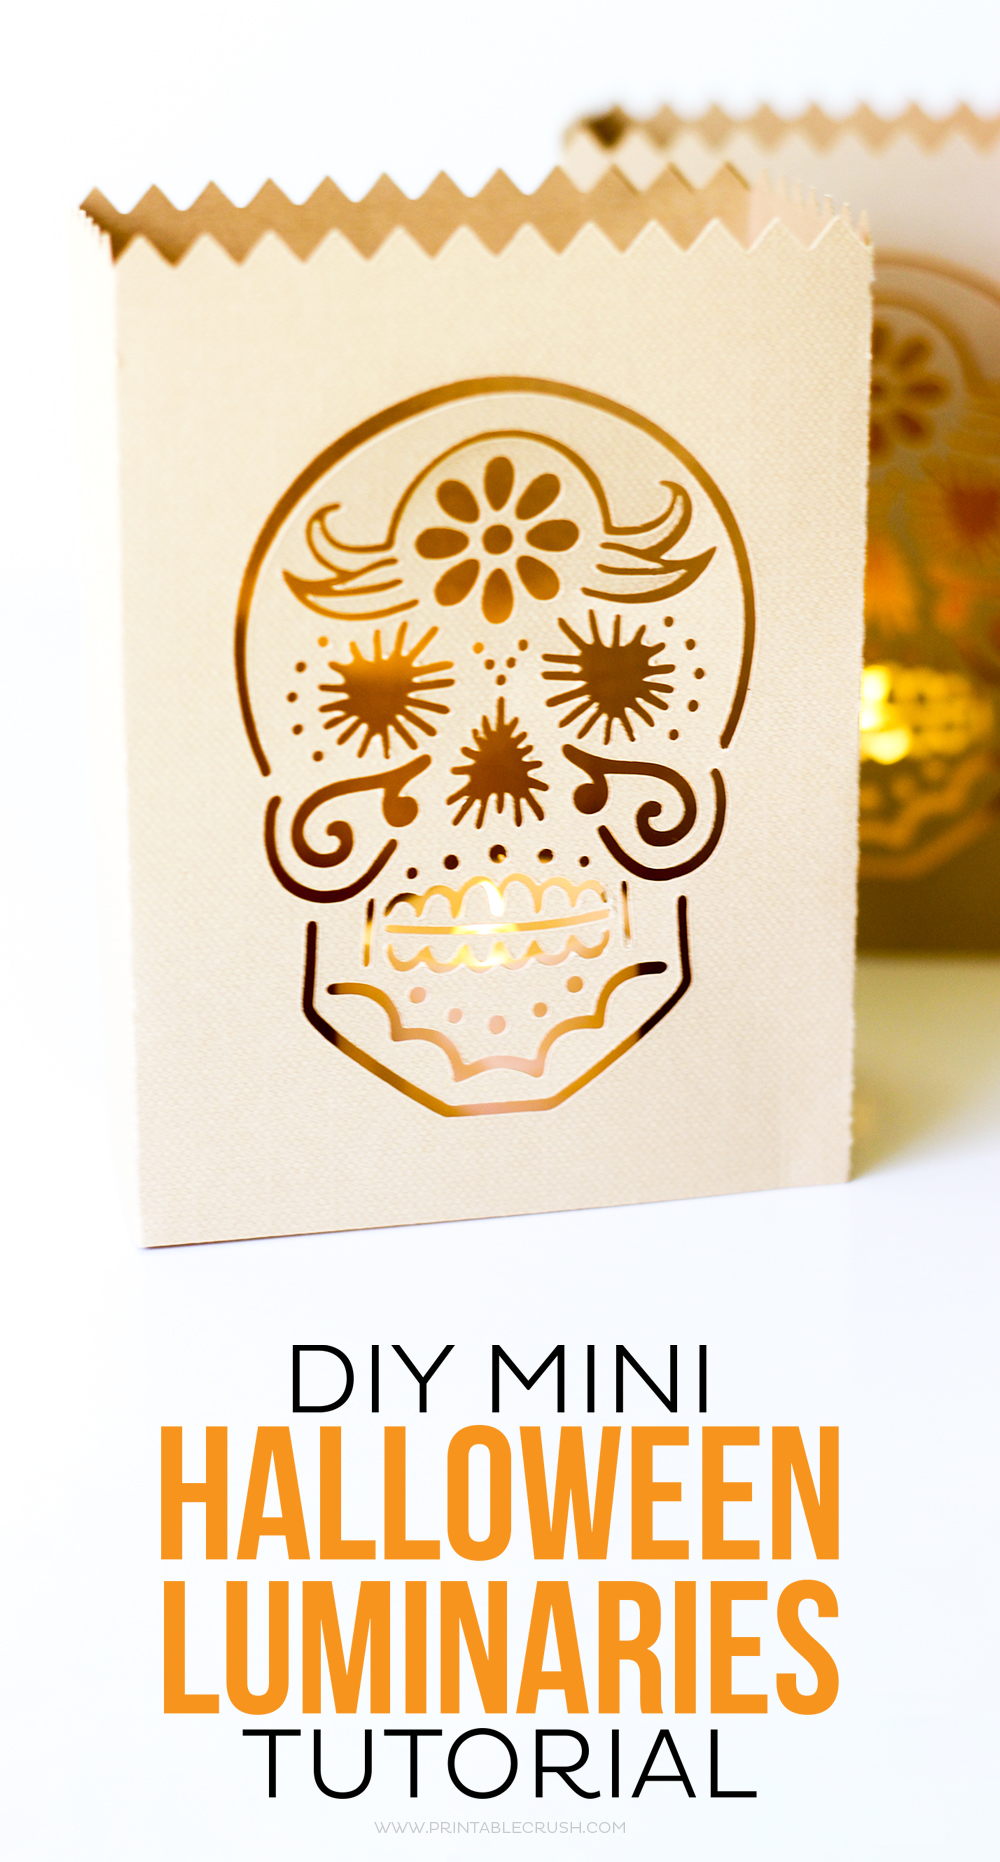 These DIY Mini Halloween Luminaries are perfect for you spooky decor. Customize the luminary file with any Halloween graphic you'd like!